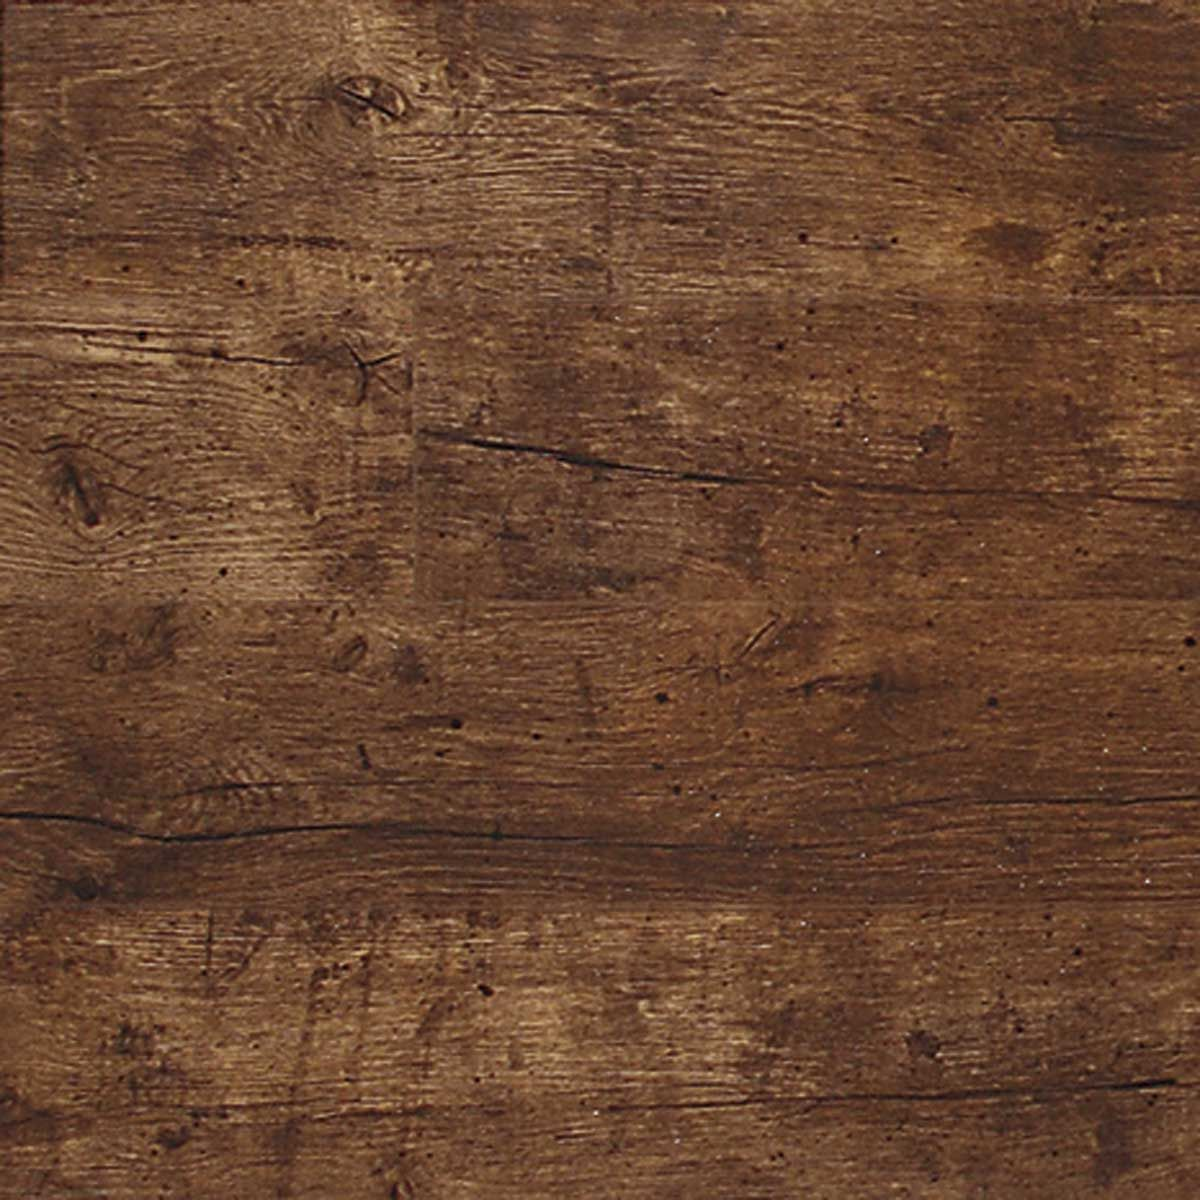 Dark brown wood veneer dark brown wood veneer google search - Picture Of Quickstep Modello Collection Barnwood Oak Planks Call For Pricing Dark Brown Laminate Wide Plank Lifetime Residential Warranty